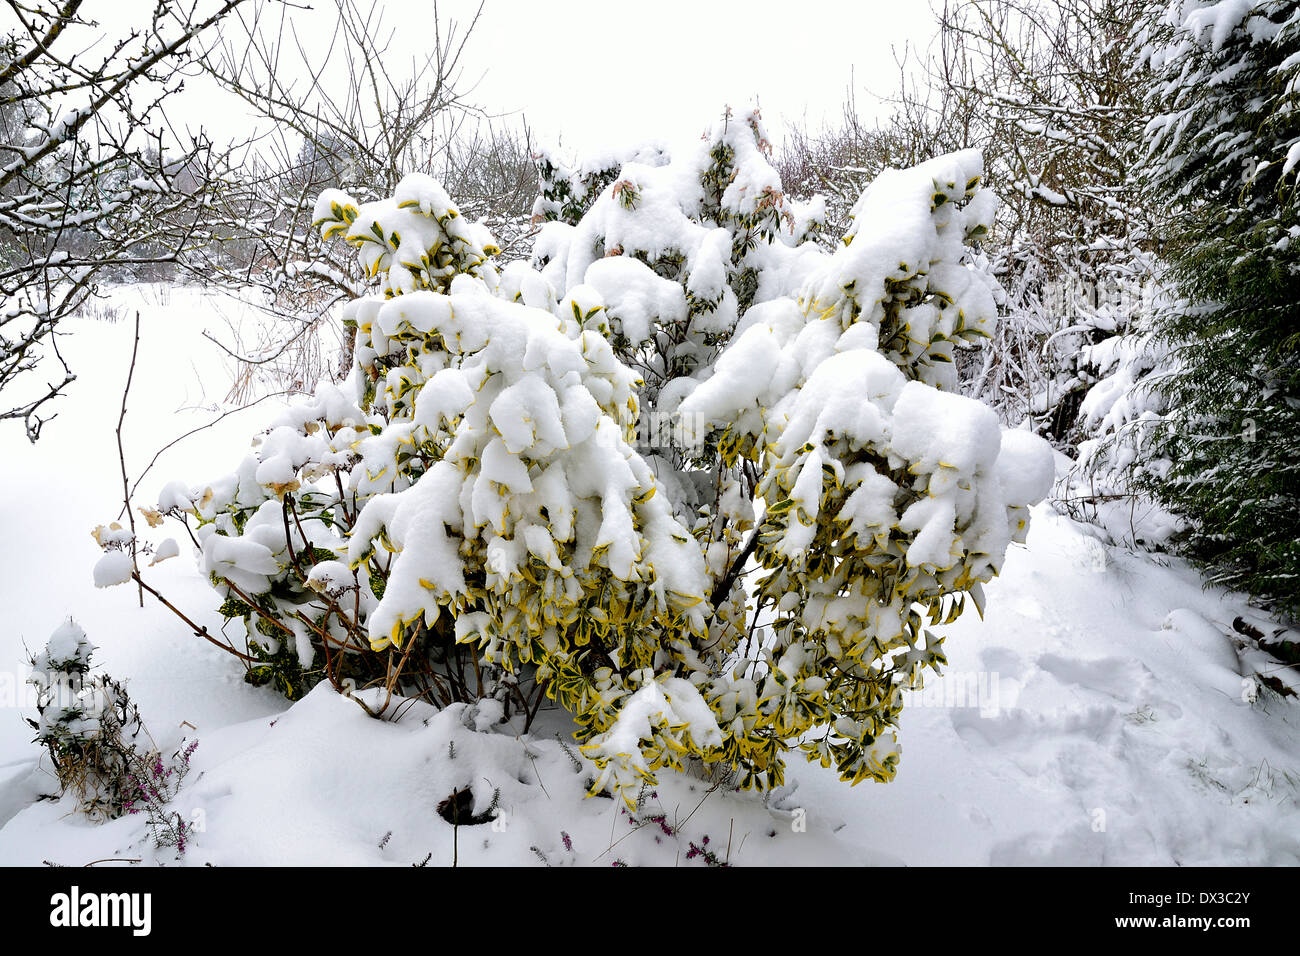 Euonymus fortunei 'Emerald n Gold' (Spindle tree), under snow in a garden (Potager de Suzanne, Le Pas, north Mayenne, FR). - Stock Image